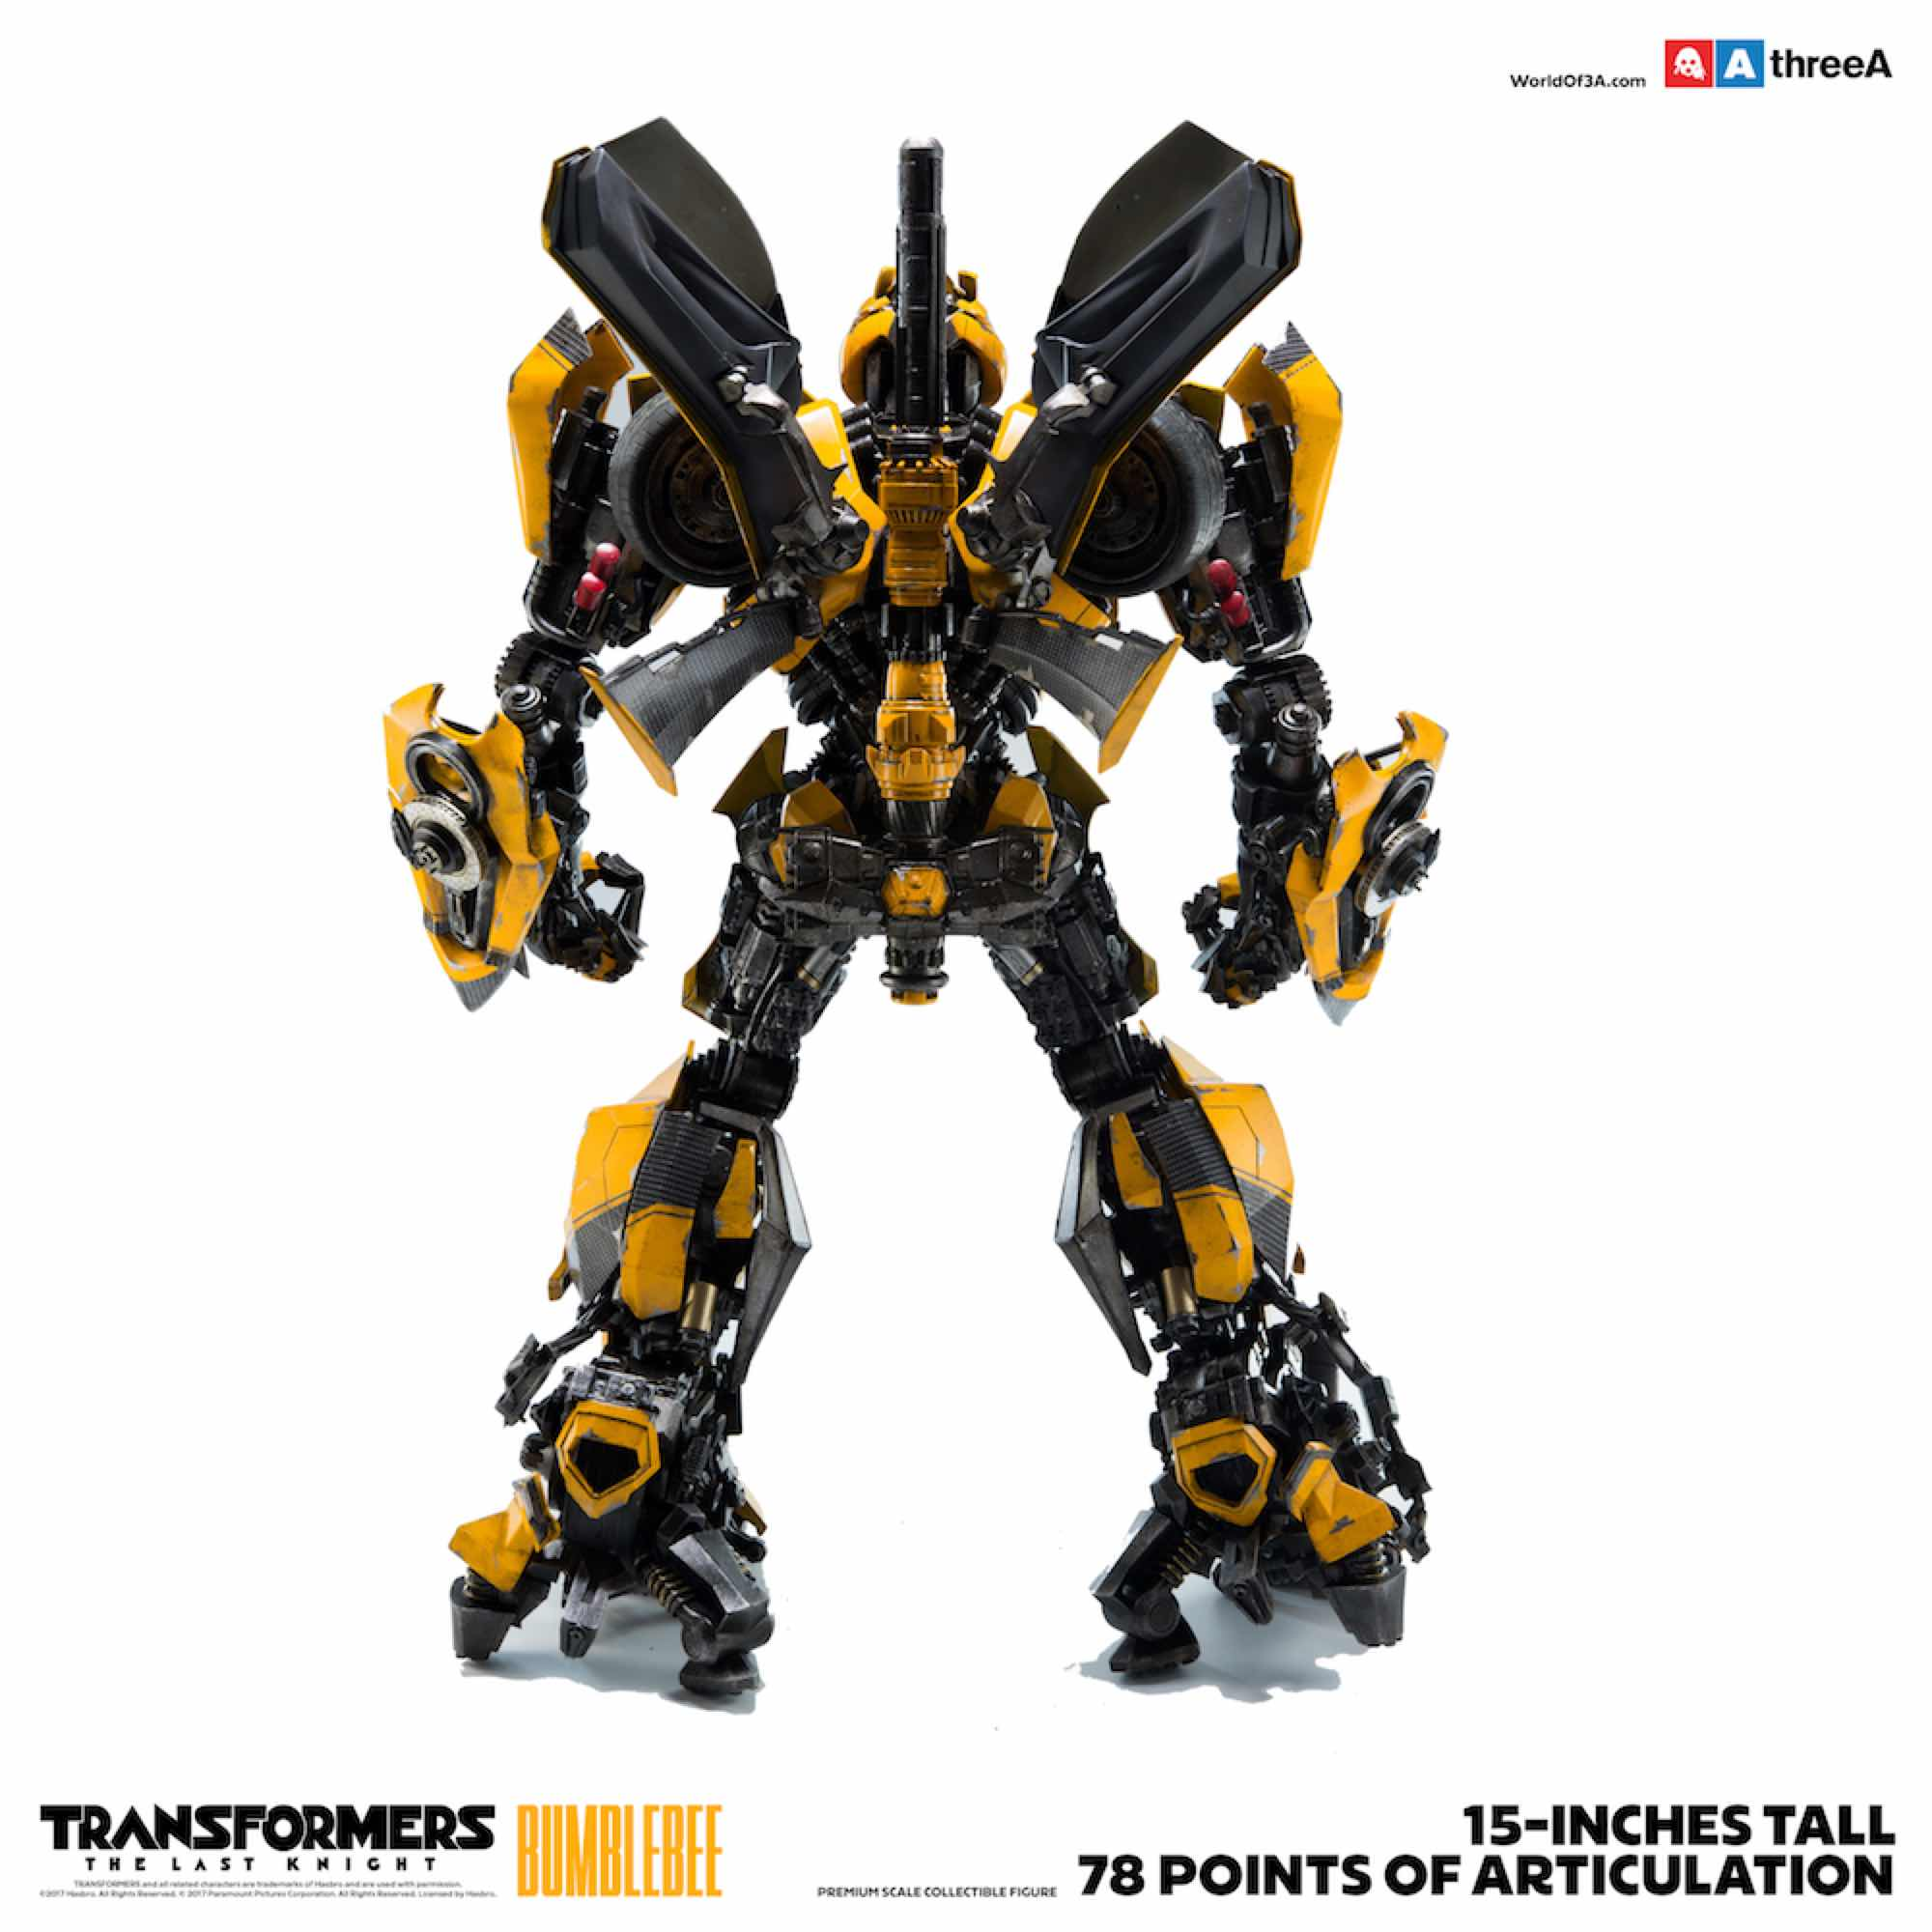 BUMBLEBEE FIGURA 38 CM TRANSFORMERS THE LAST KNIGHT THREEAZERO